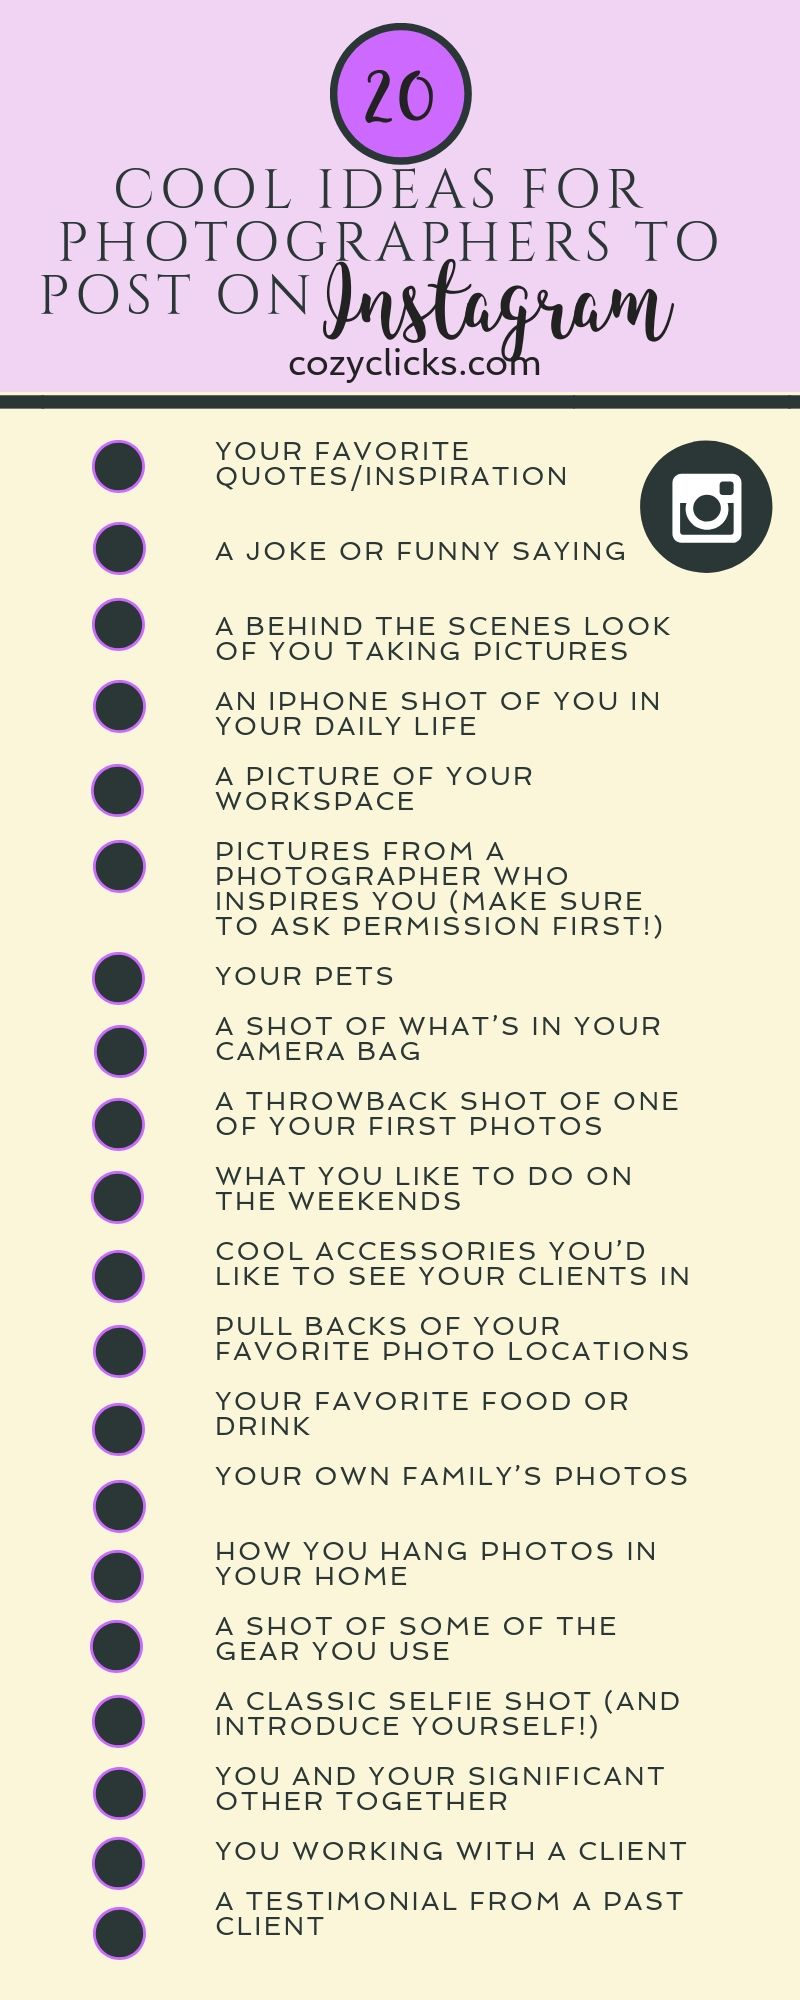 20 Cool Ideas For Photographers To Post On Instagram Besides Their Own Work Instagram Business Instagram Photographer Website